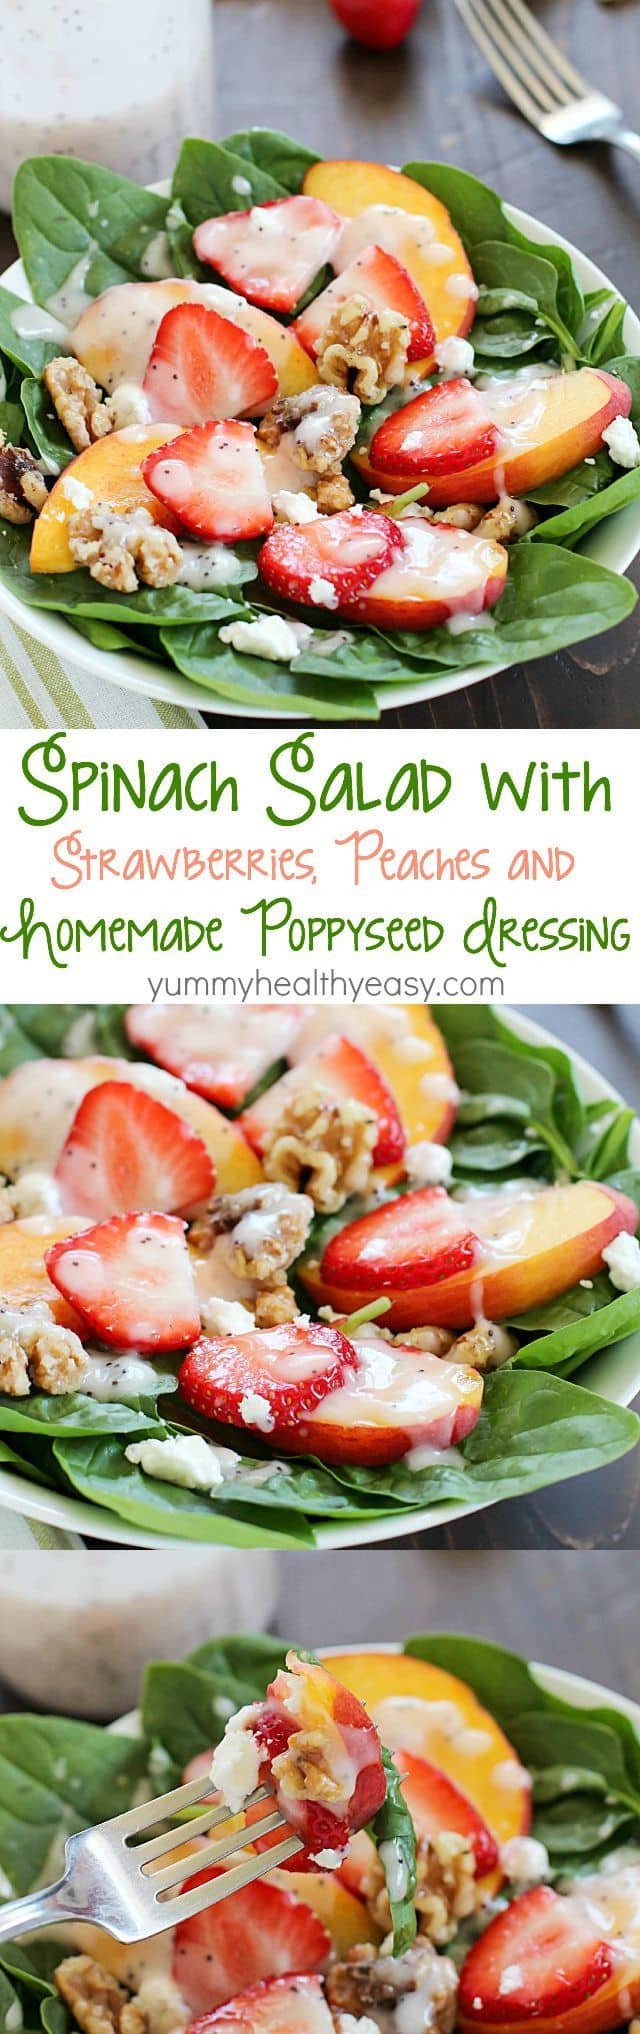 Arugula, Berries And Goat Cheese Salad With Poppy Seed Dressing Recipe ...